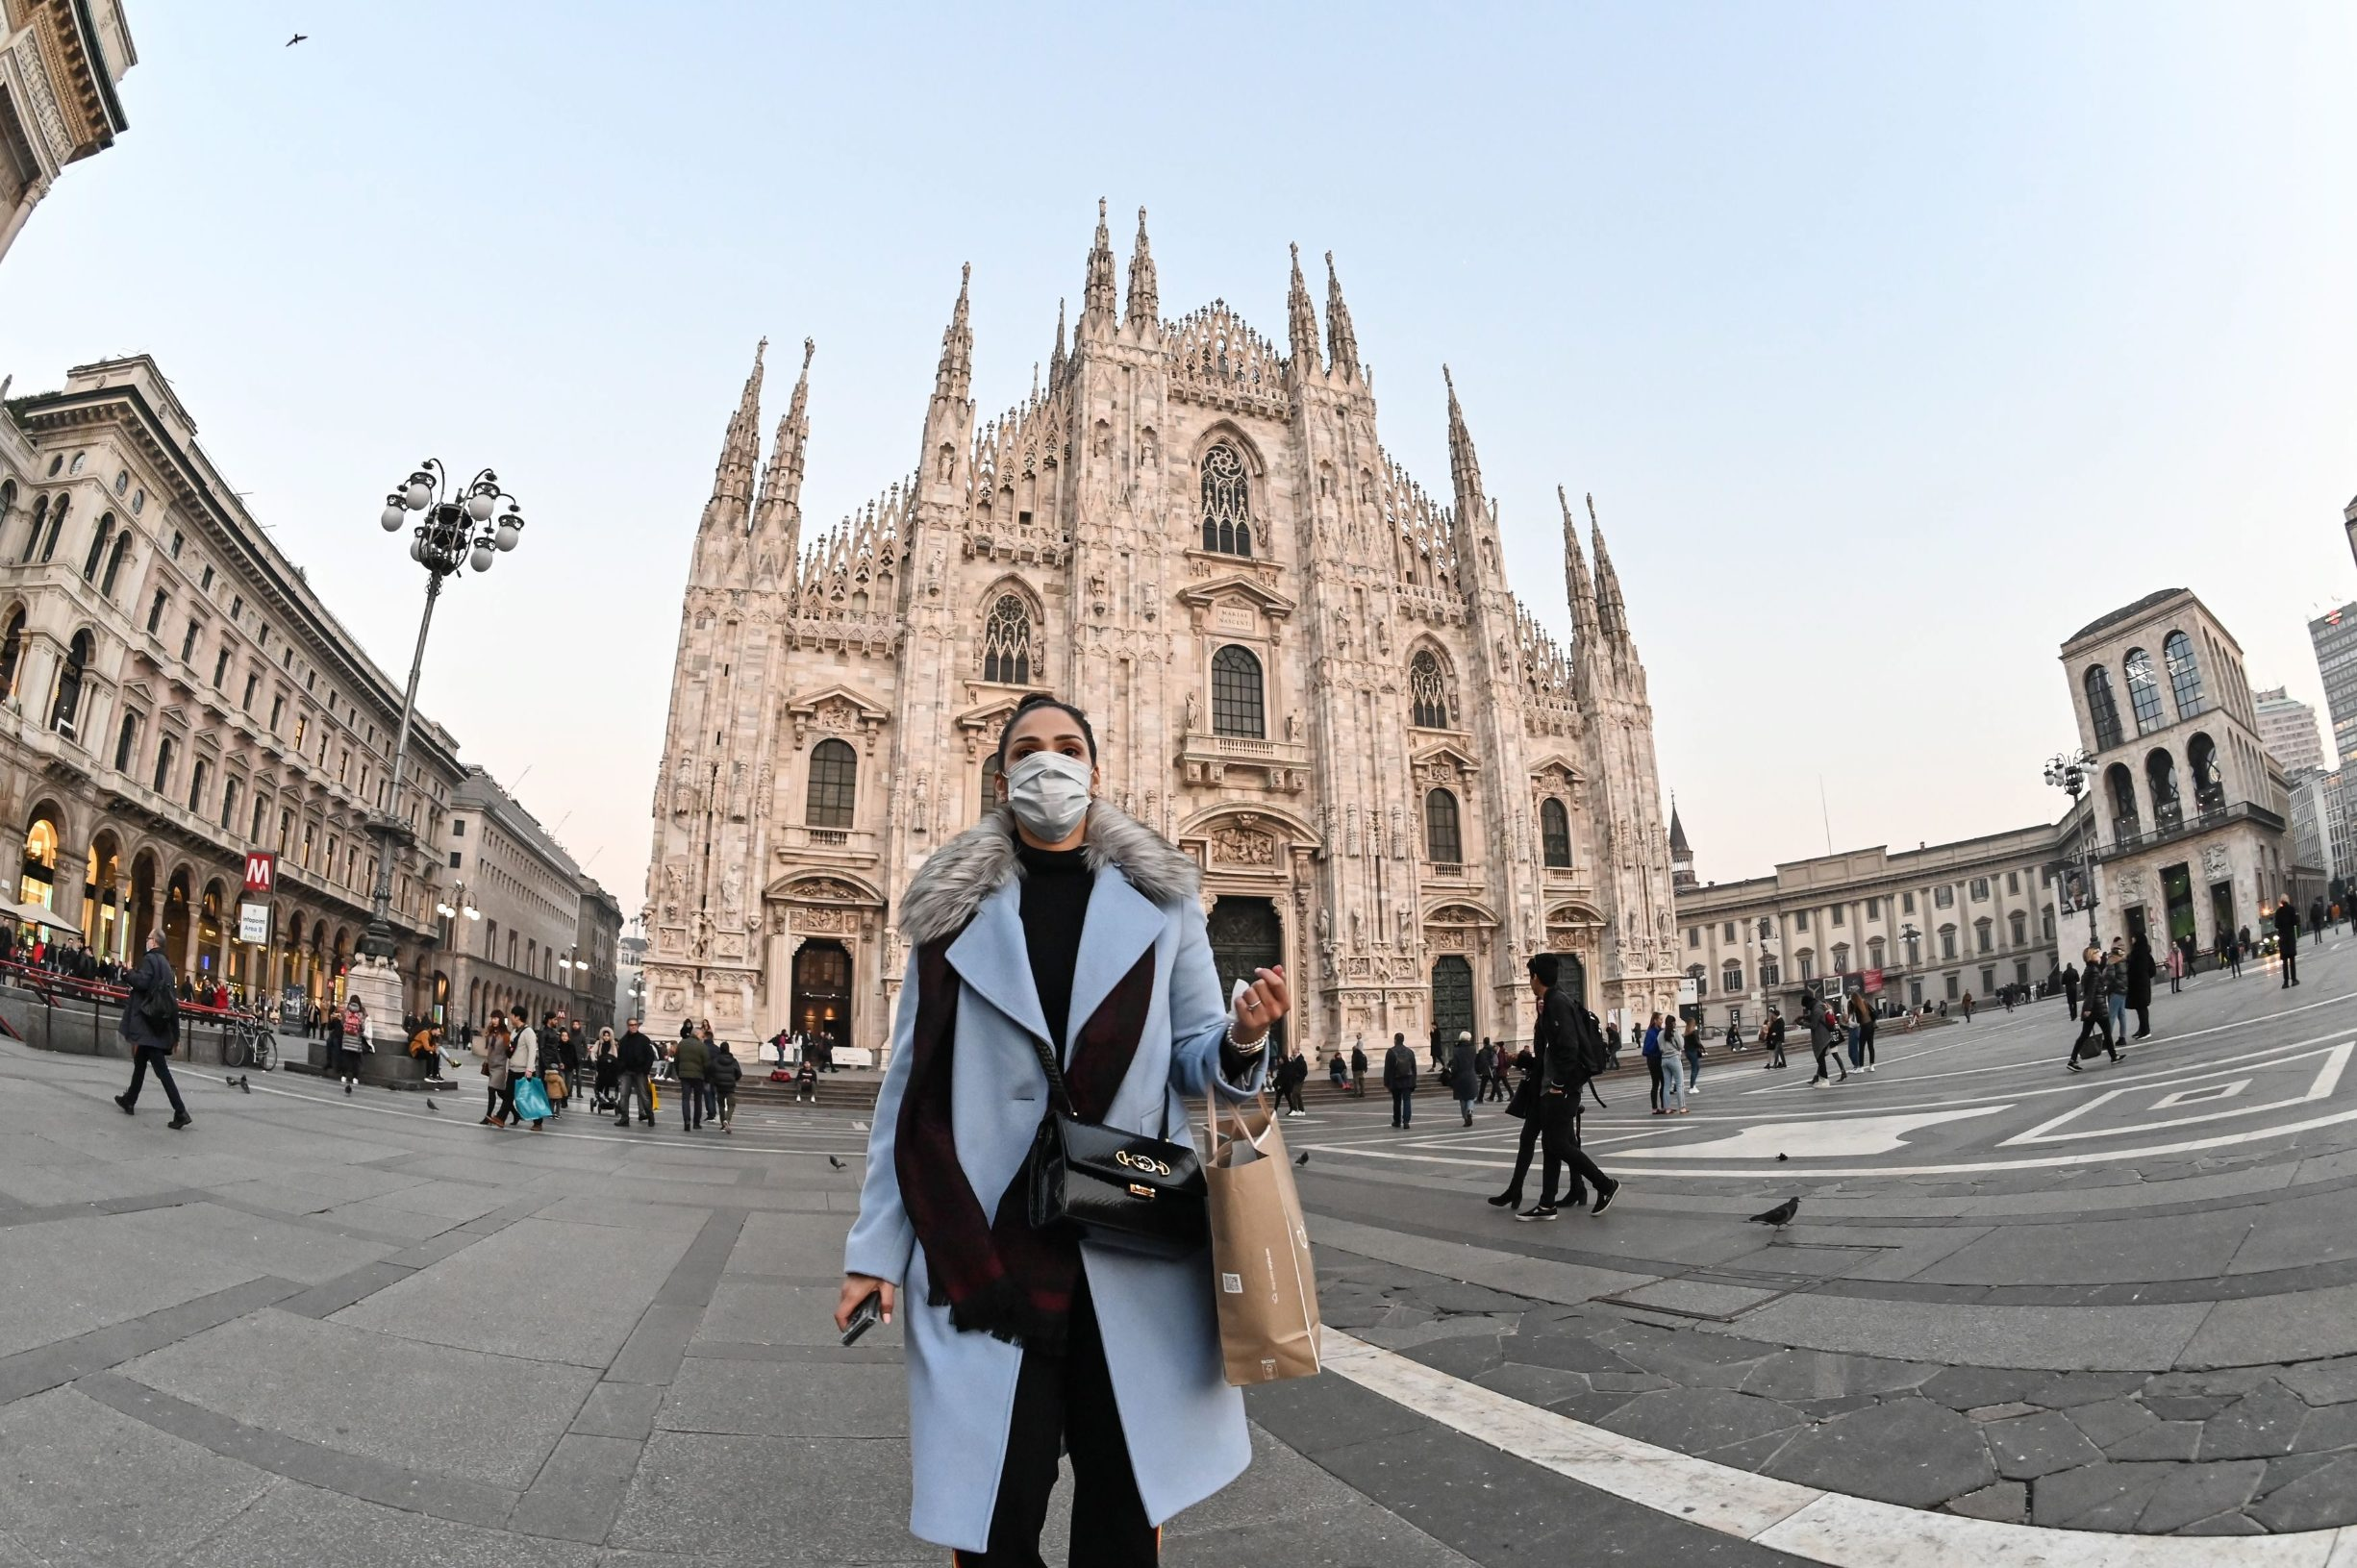 A woman with a protective facemask walks across the Piazza del Duomo, in front of the Duomo, in central Milan, on February 24, 2020, following security measures taken in northern Italy against the COVID-19 the novel coronavirus. - Italy reported on February 24, 2020 its fourth death from the new coronavirus, an 84-year old man in the northern Lombardy region, as the number of people contracting the virus continued to mount. (Photo by Andreas SOLARO / AFP)